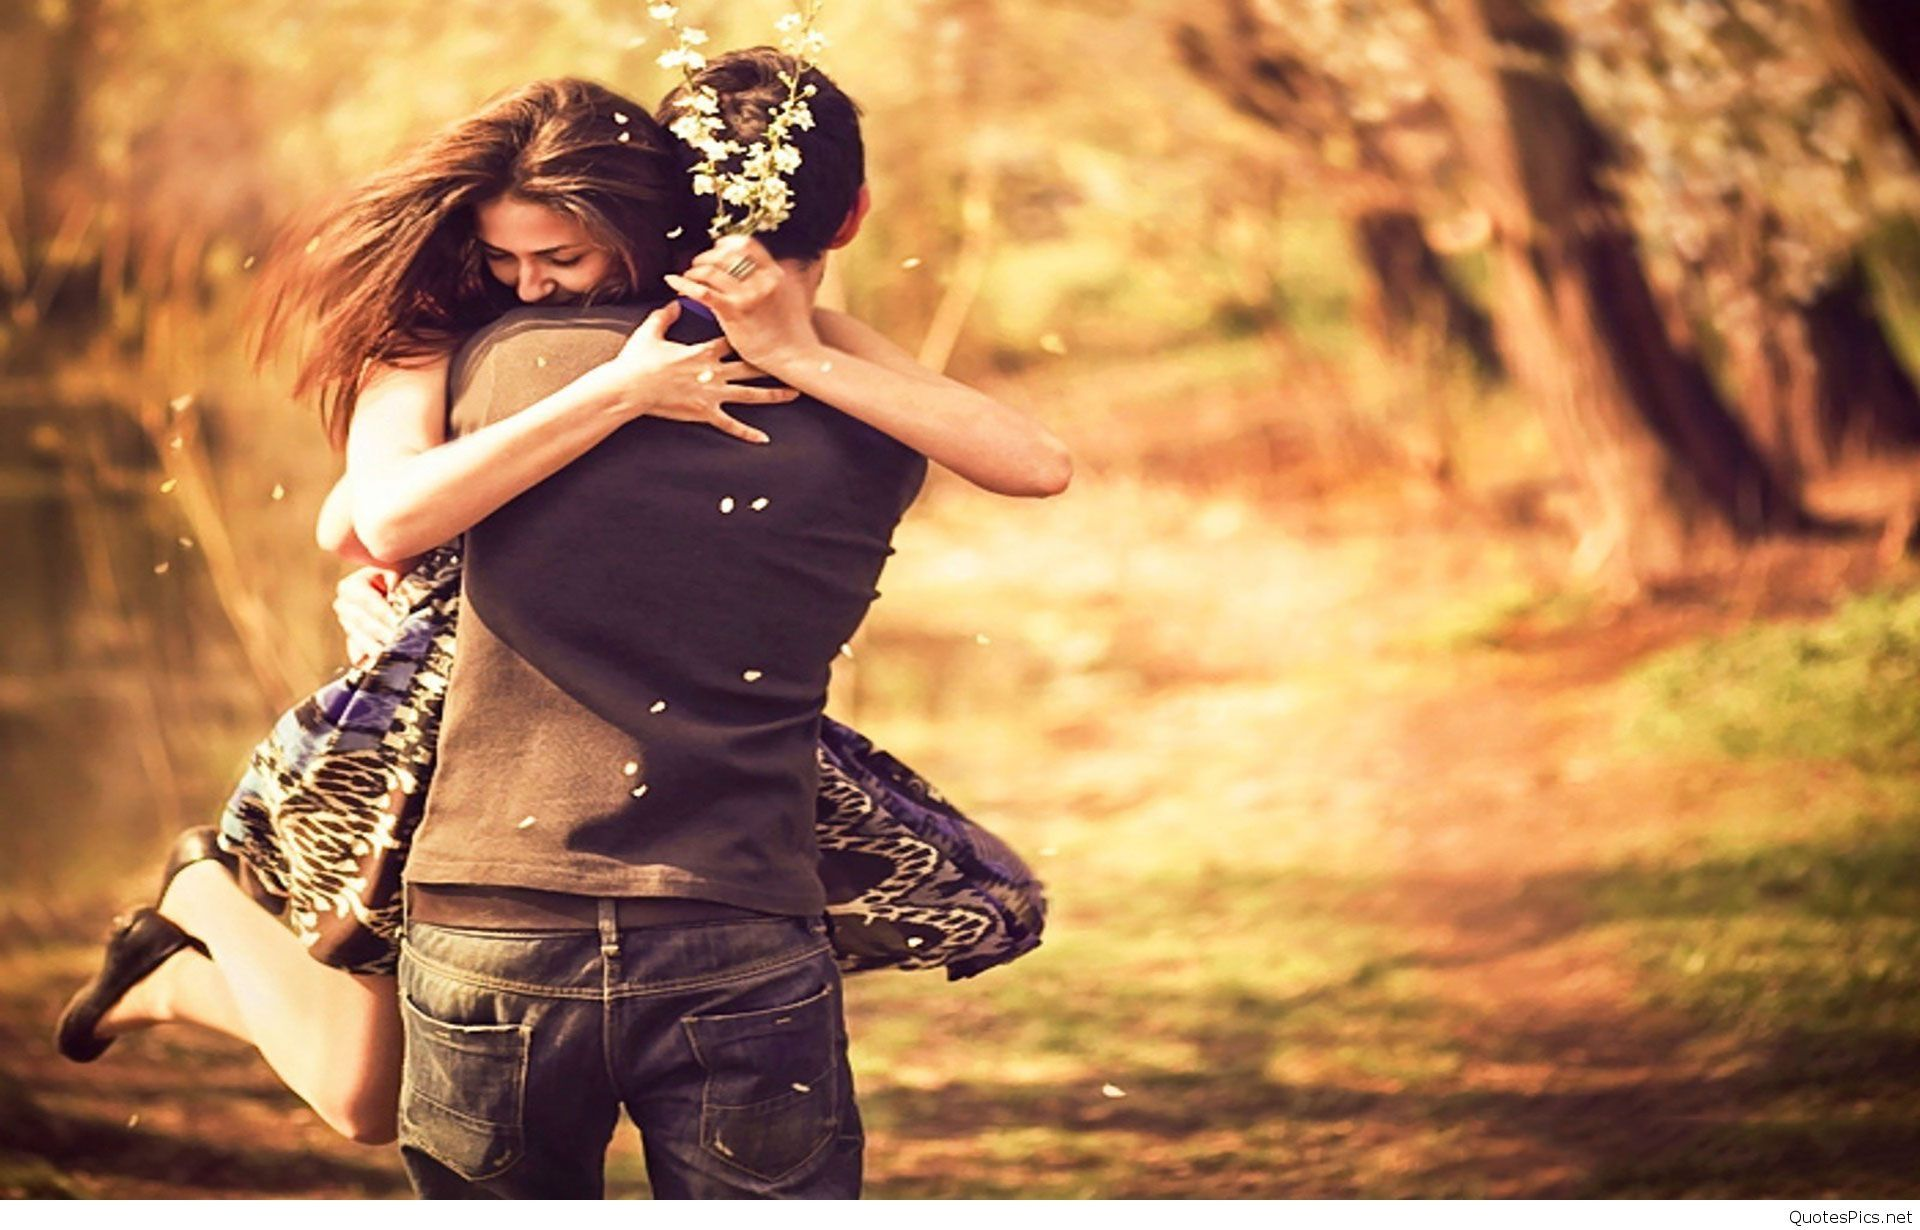 best images of love hug kiss - love romantic couple hug and kiss